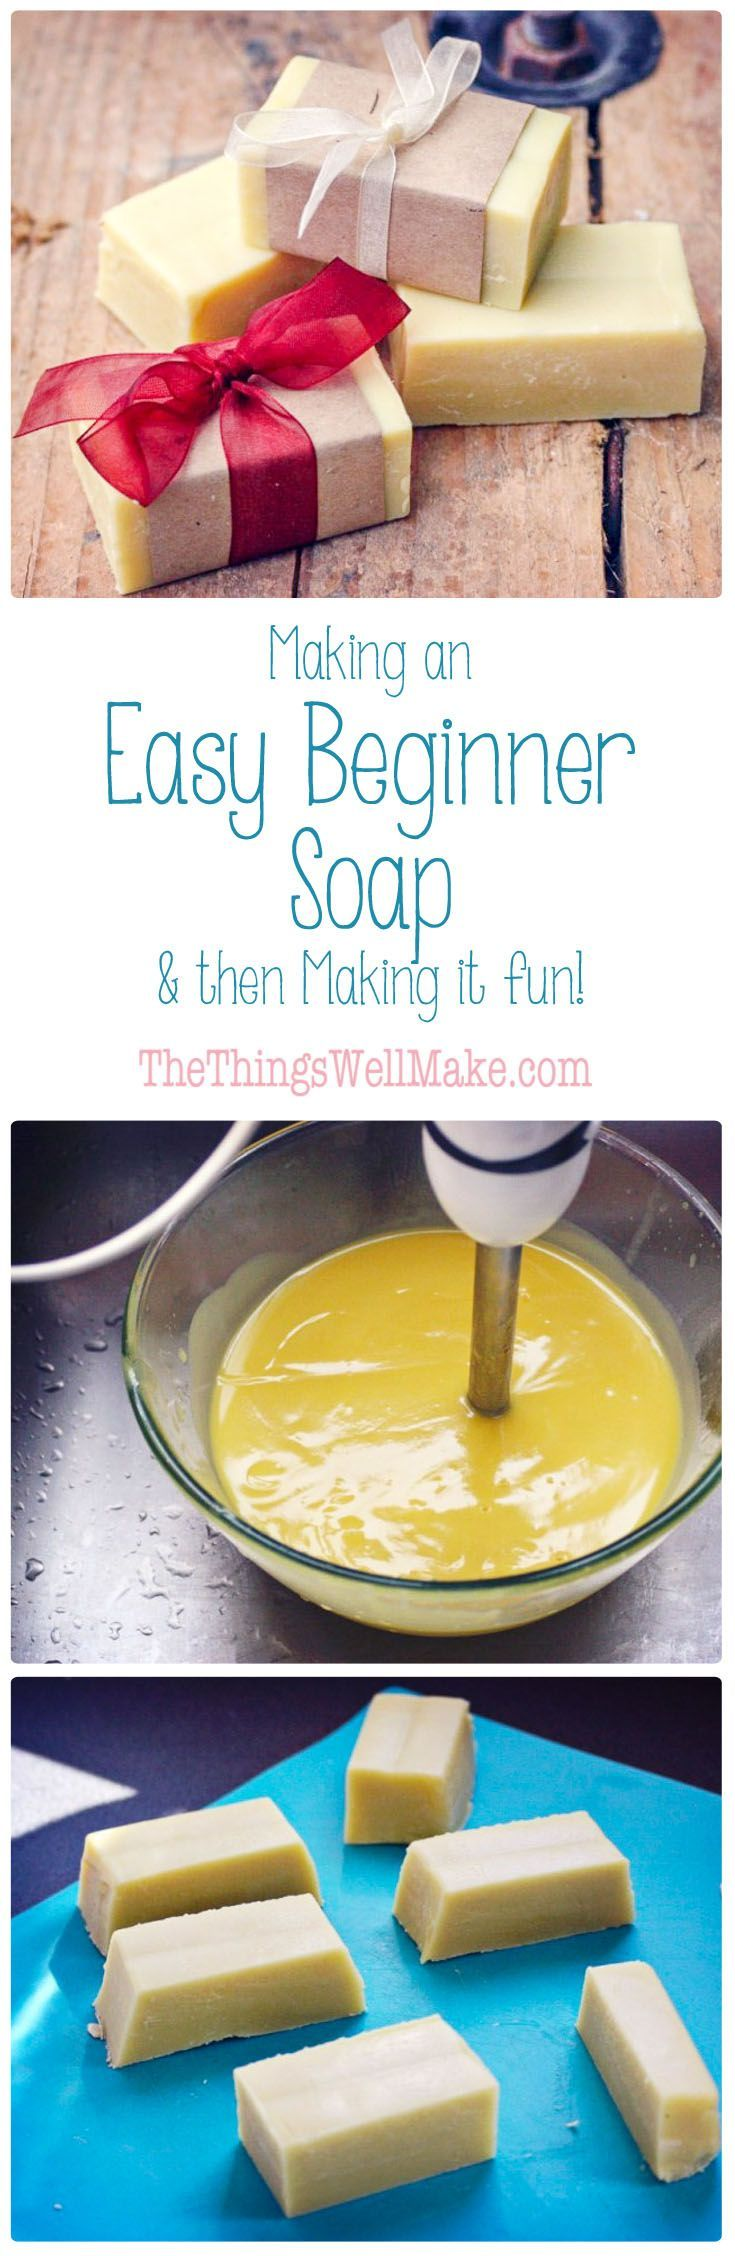 Making soap isn't difficult. Today I'm sharing my quick and easy, basic beginner soap recipe with fun ideas for personalizing it by adding exfoliants, essential oils, etc.